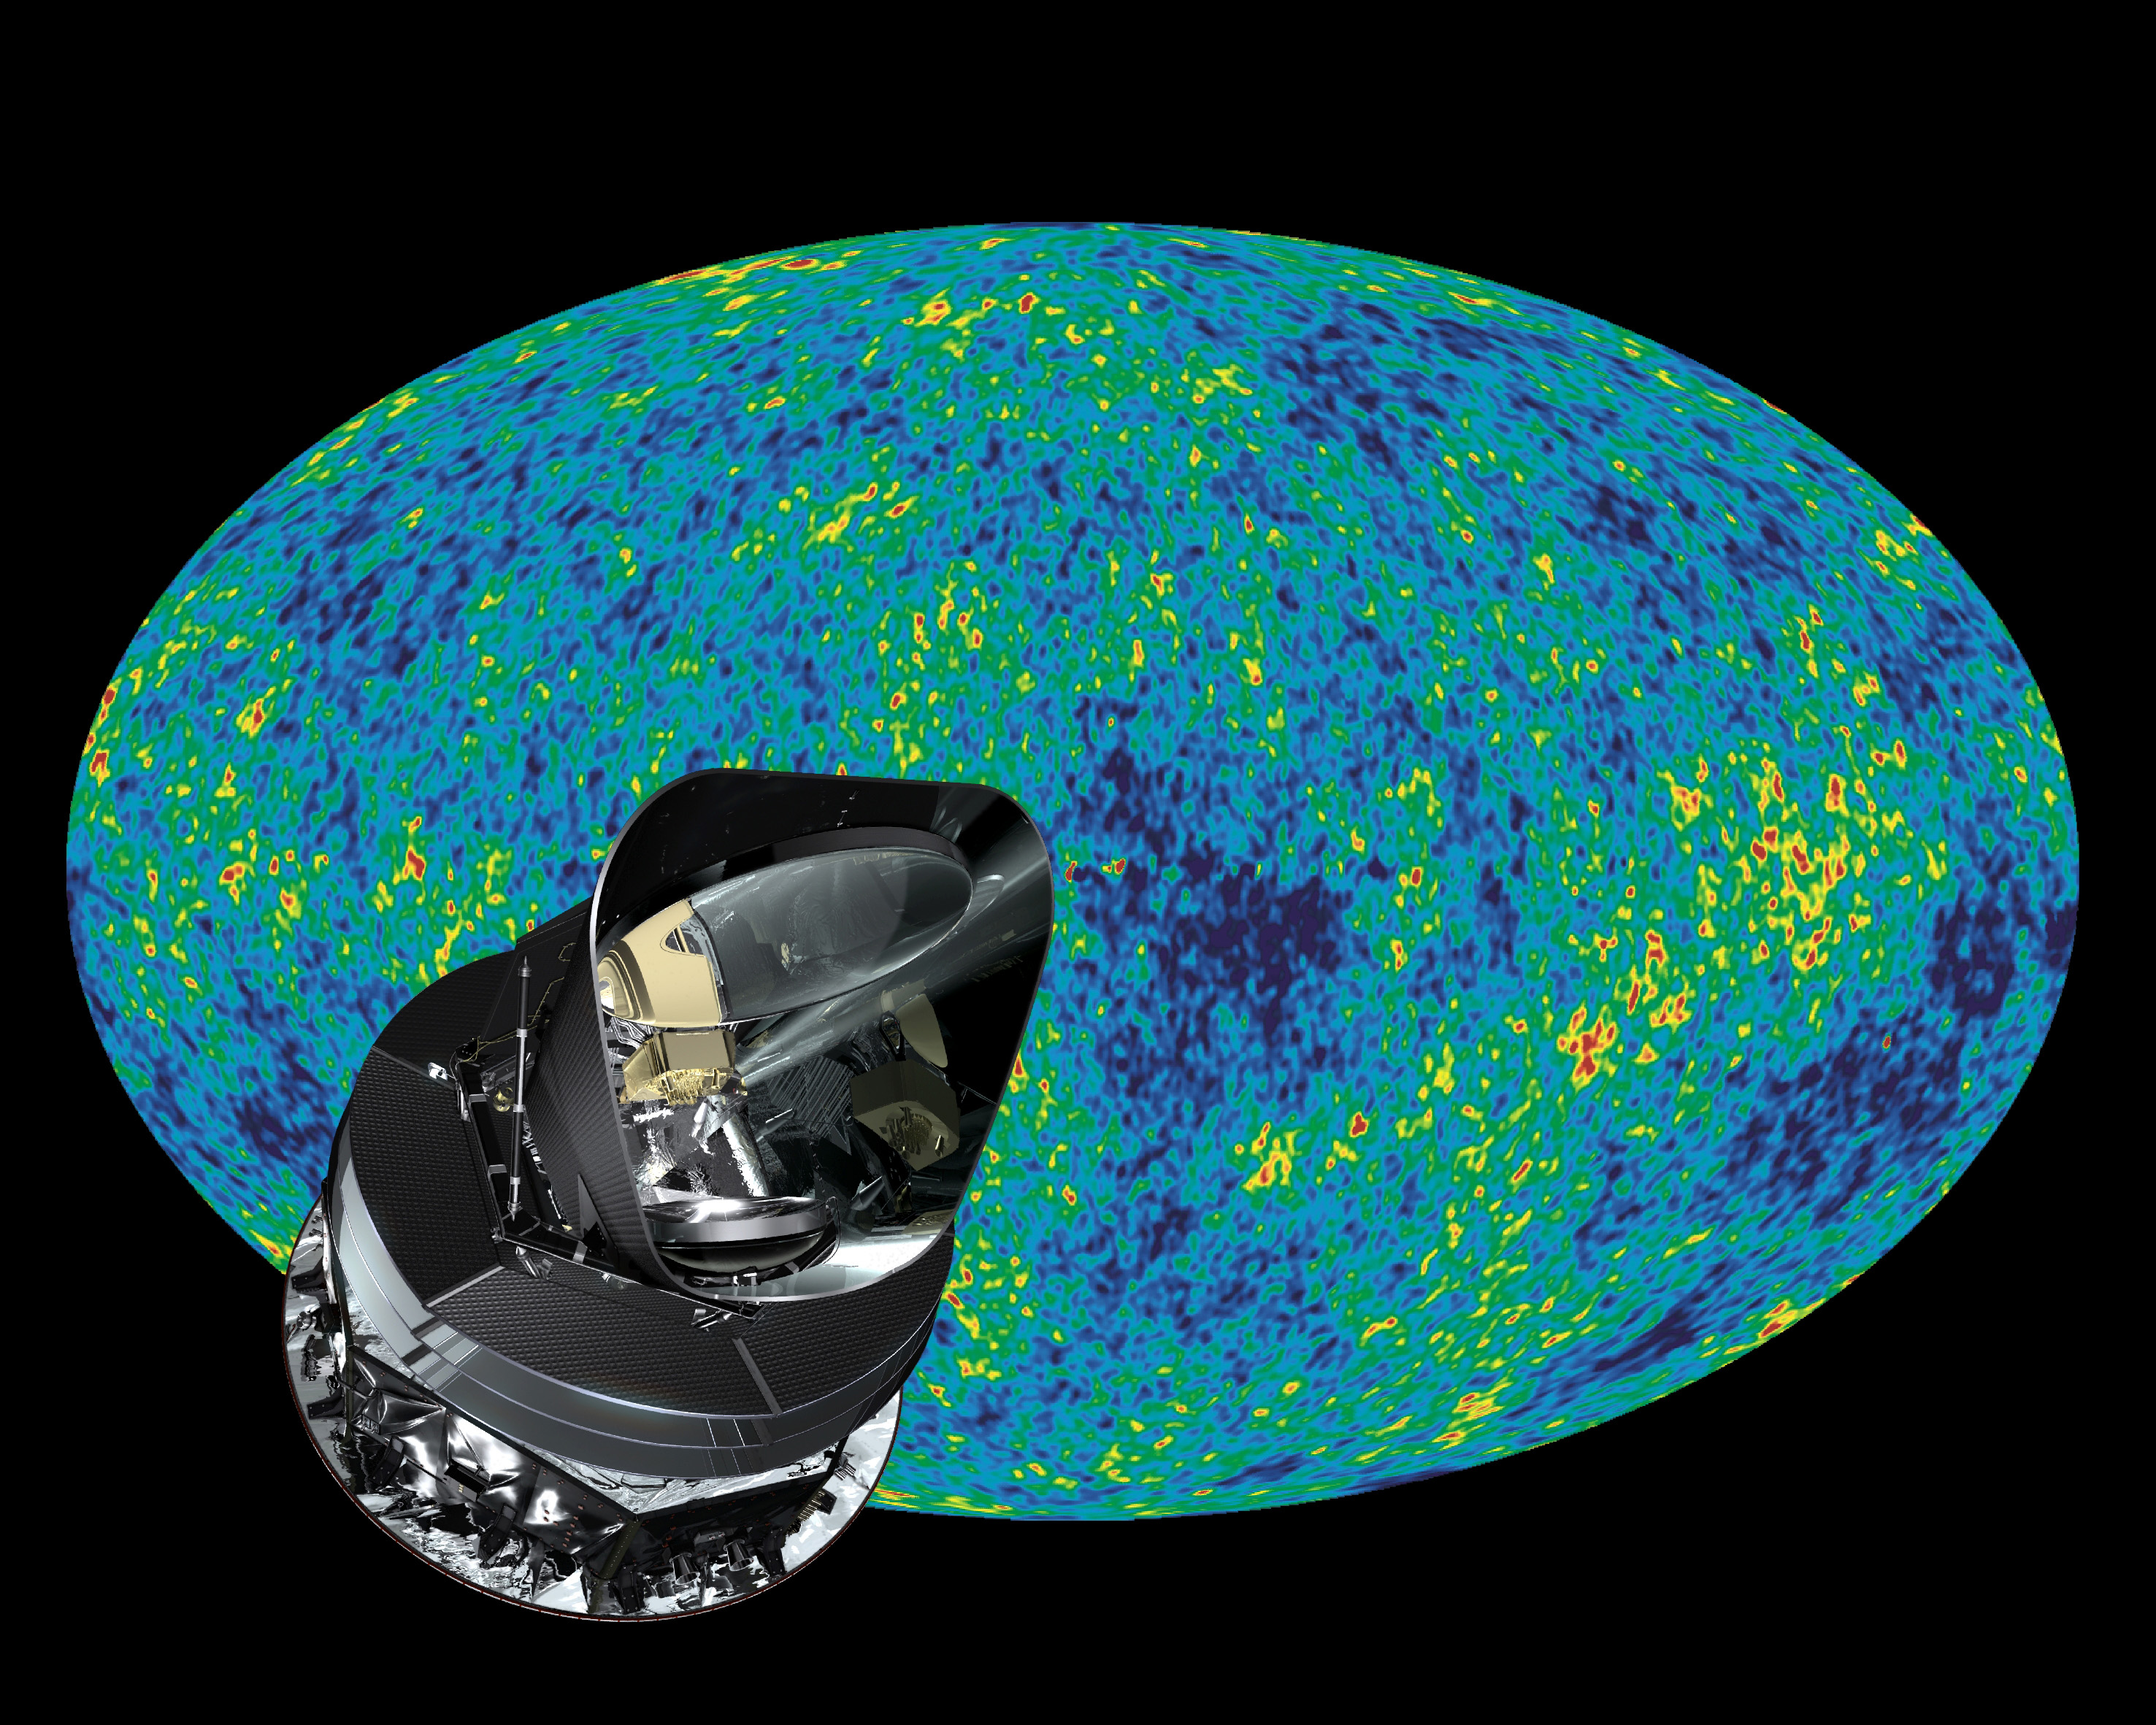 Space in Images - 2009 - 02 - Planck will chart the